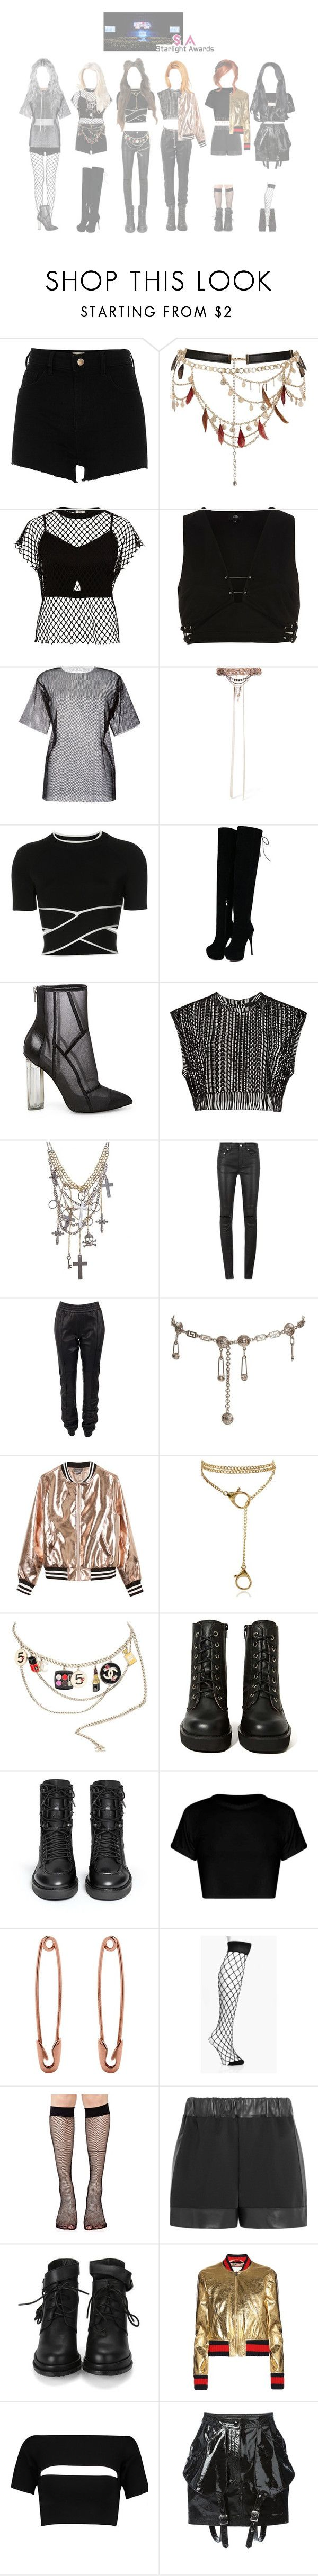 """""""┇ AWARDS ┇ Starlight Awards PERFORMANCE"""" by dreamcatcher-official ❤ liked on Polyvore featuring River Island, MM6 Maison Margiela, Erickson Beamon, T By Alexander Wang, Steve Madden, Yves Saint Laurent, Joseph, Versace, Sans Souci and Karl Lagerfeld"""